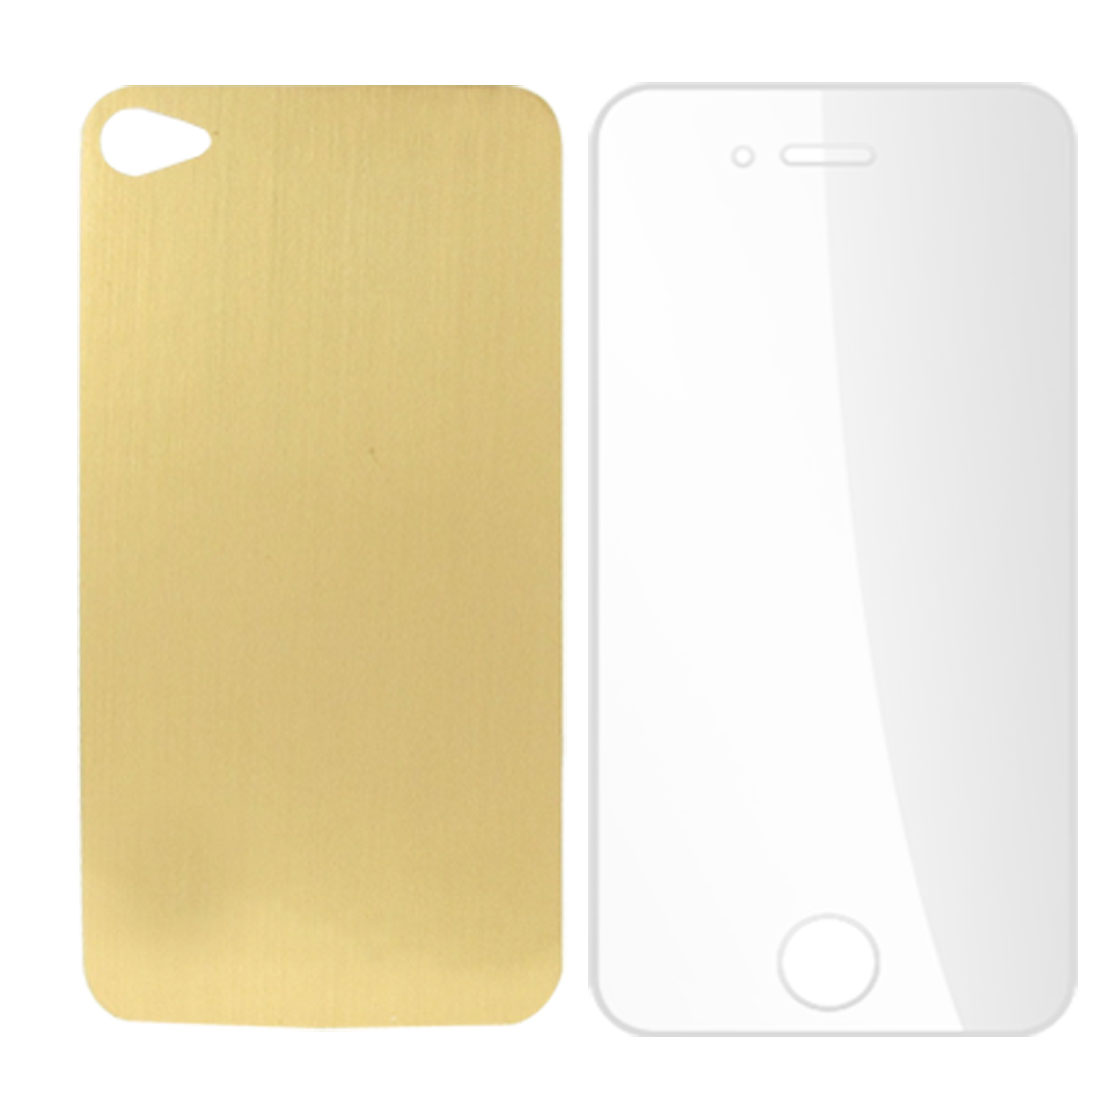 Gold Tone Back Clear Front Stickers Decals Cover for iPhone 4 4S